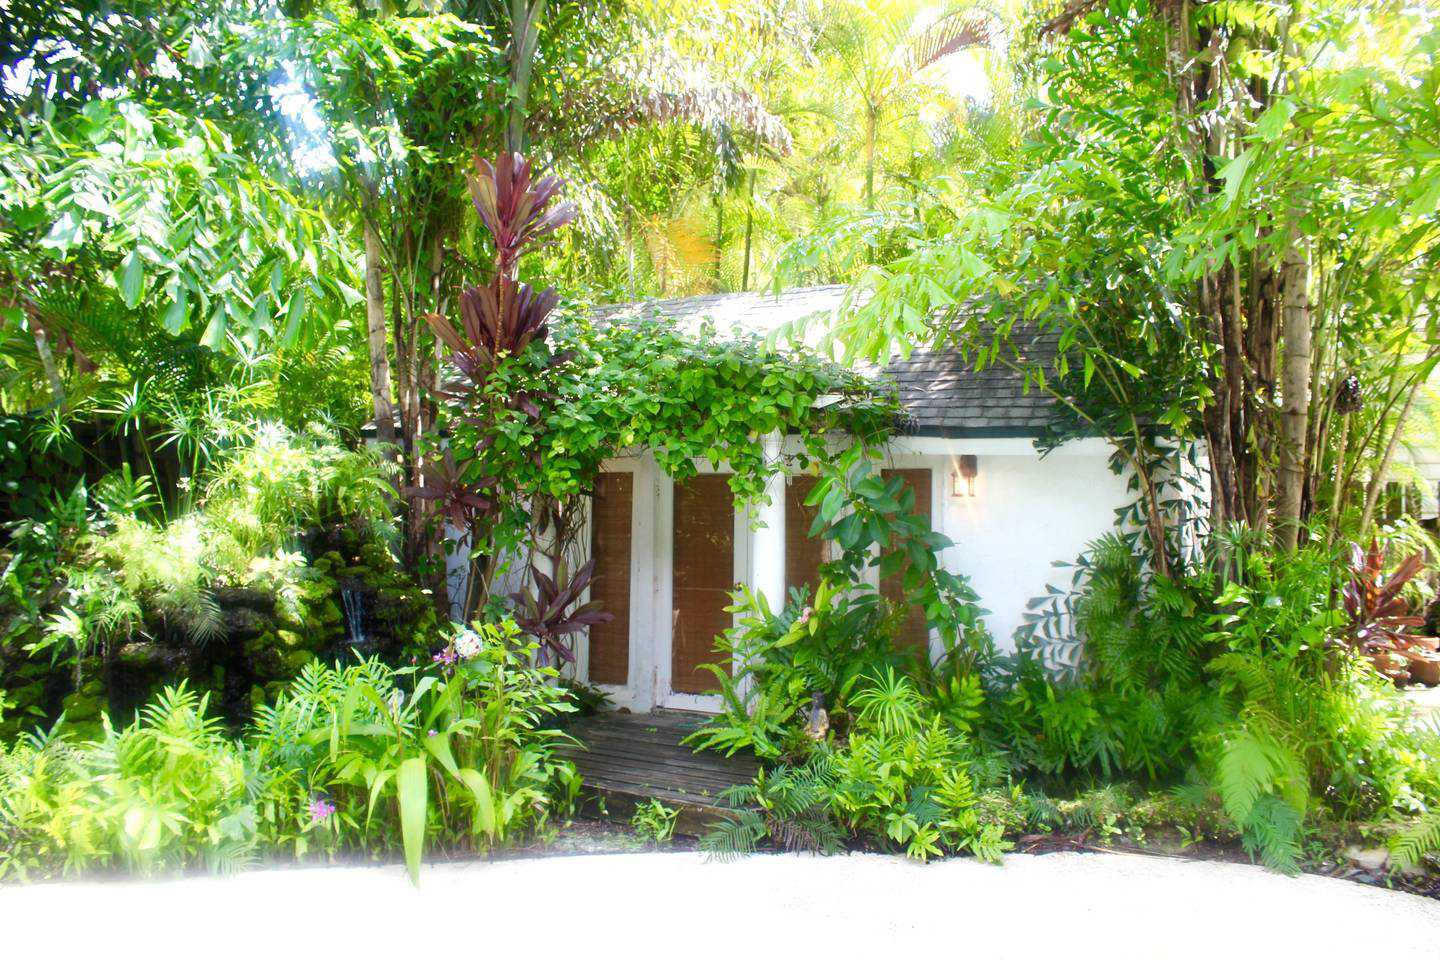 Surrounded by trees in the laidback Coconut Grove neighborhood of Miami, this secluded spot is serene on the inside and verdant on the outside. Vaulted ceilings give the small space—the cottage consists of a bedroom and a bathroom, plus an efficiency kitc